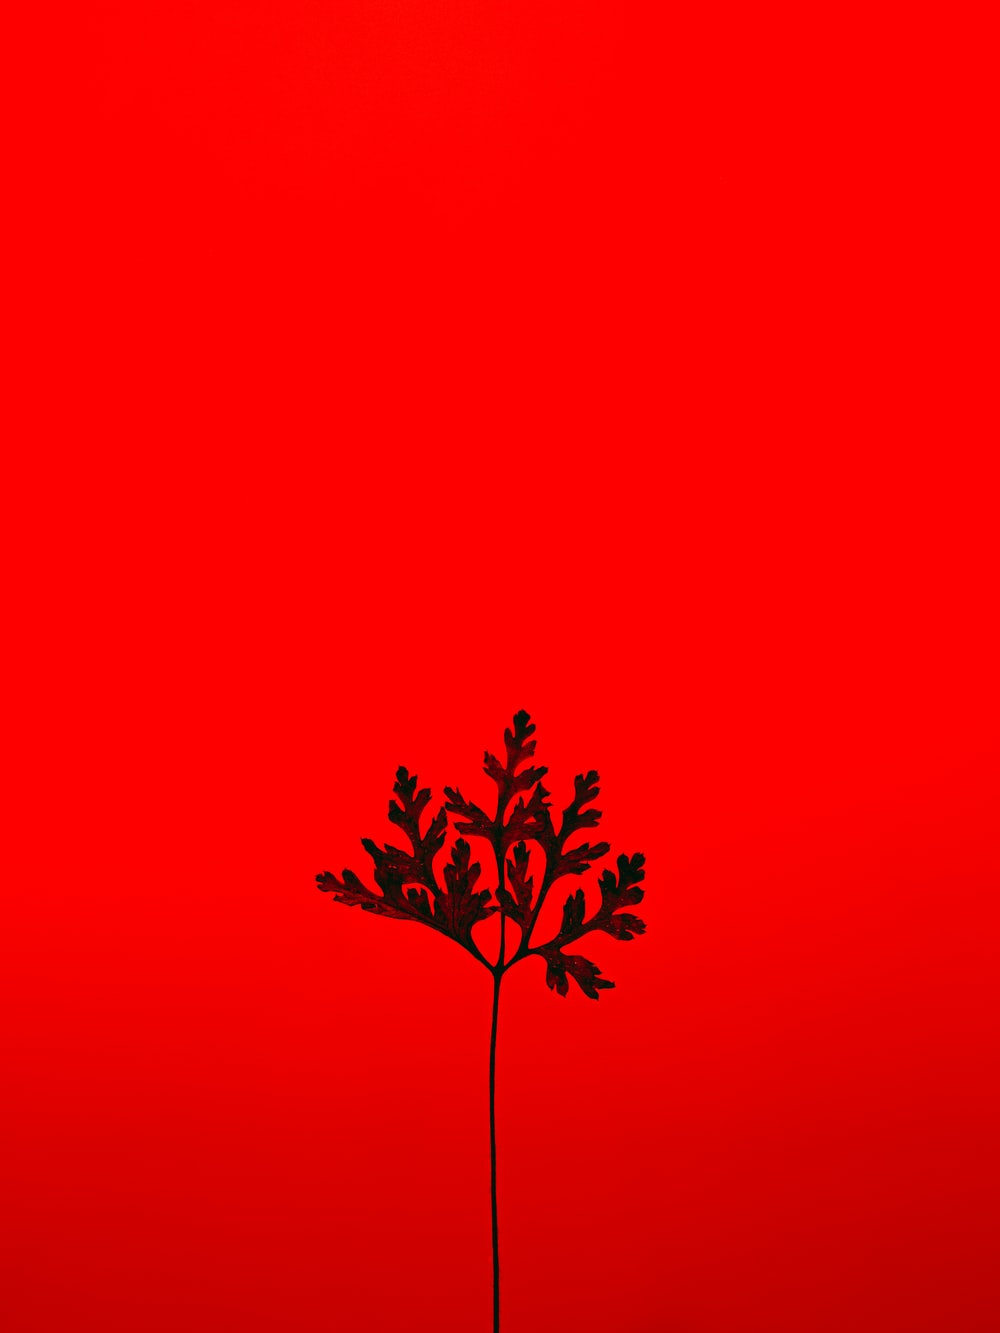 red and black tree with red background